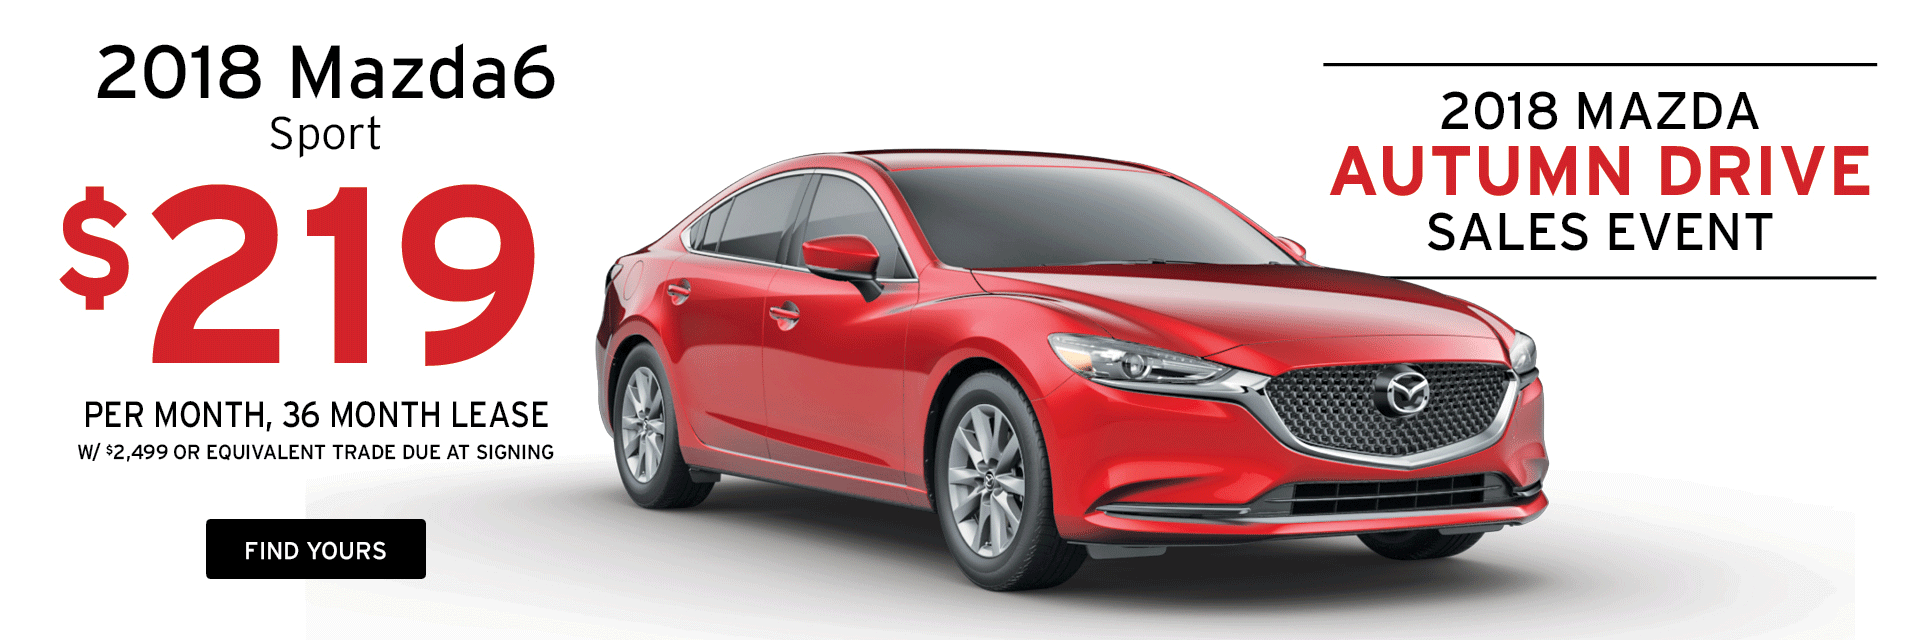 Lease a Mazda6 at Holiday Mazda in Fond du Lac, WI